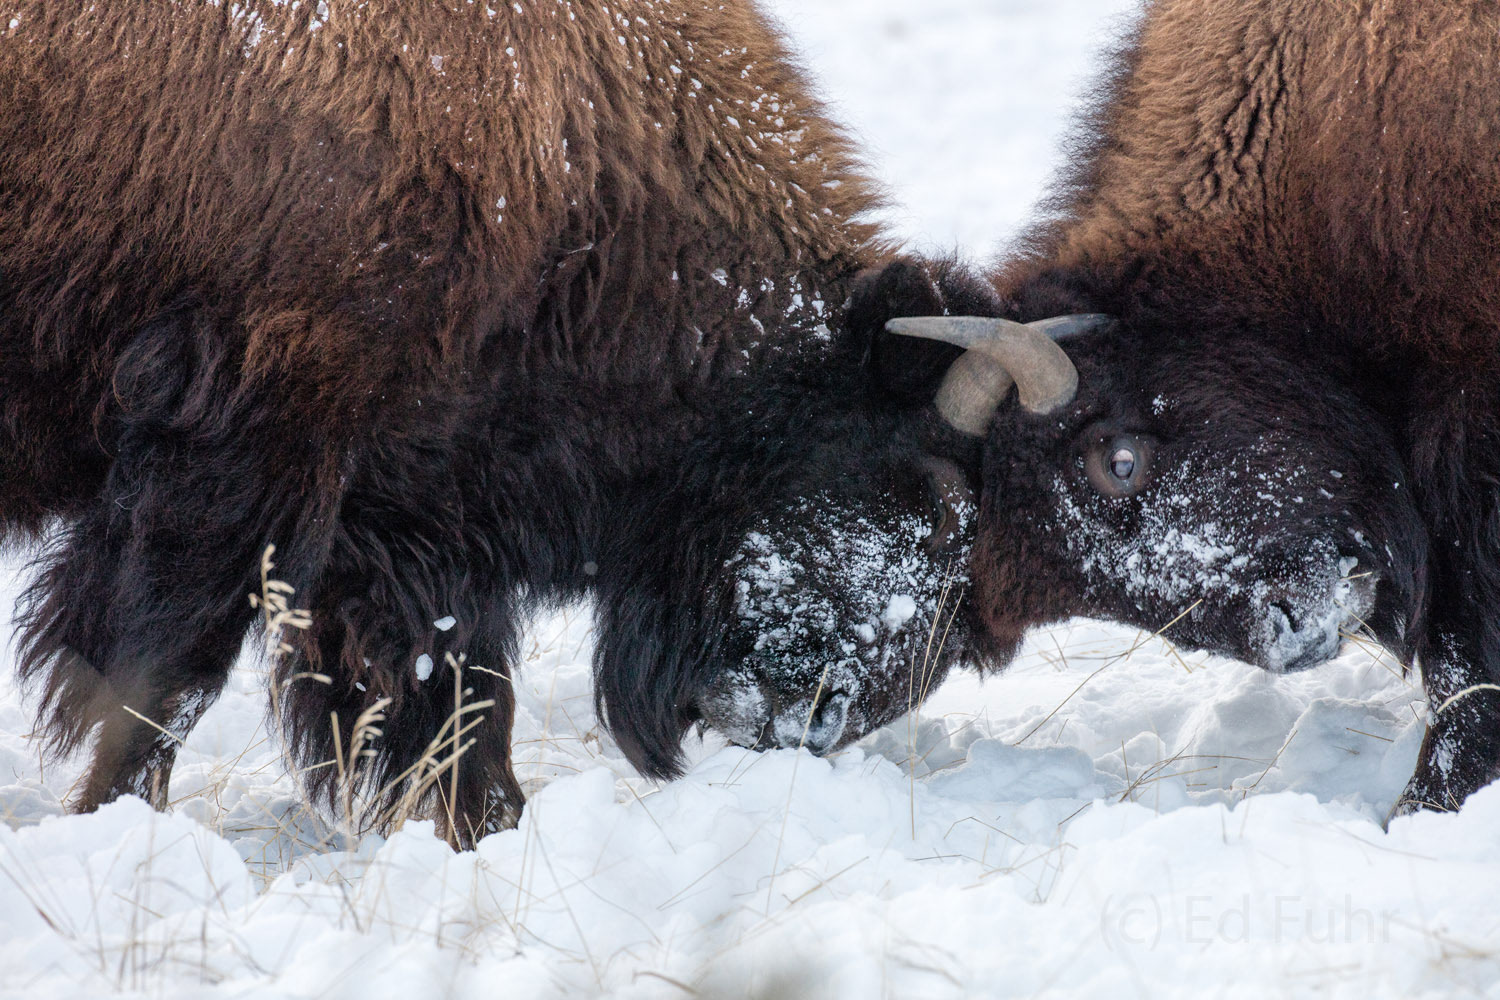 2015, grand teton, bison, winter, december 2015, photograph, image, Tetons, photo